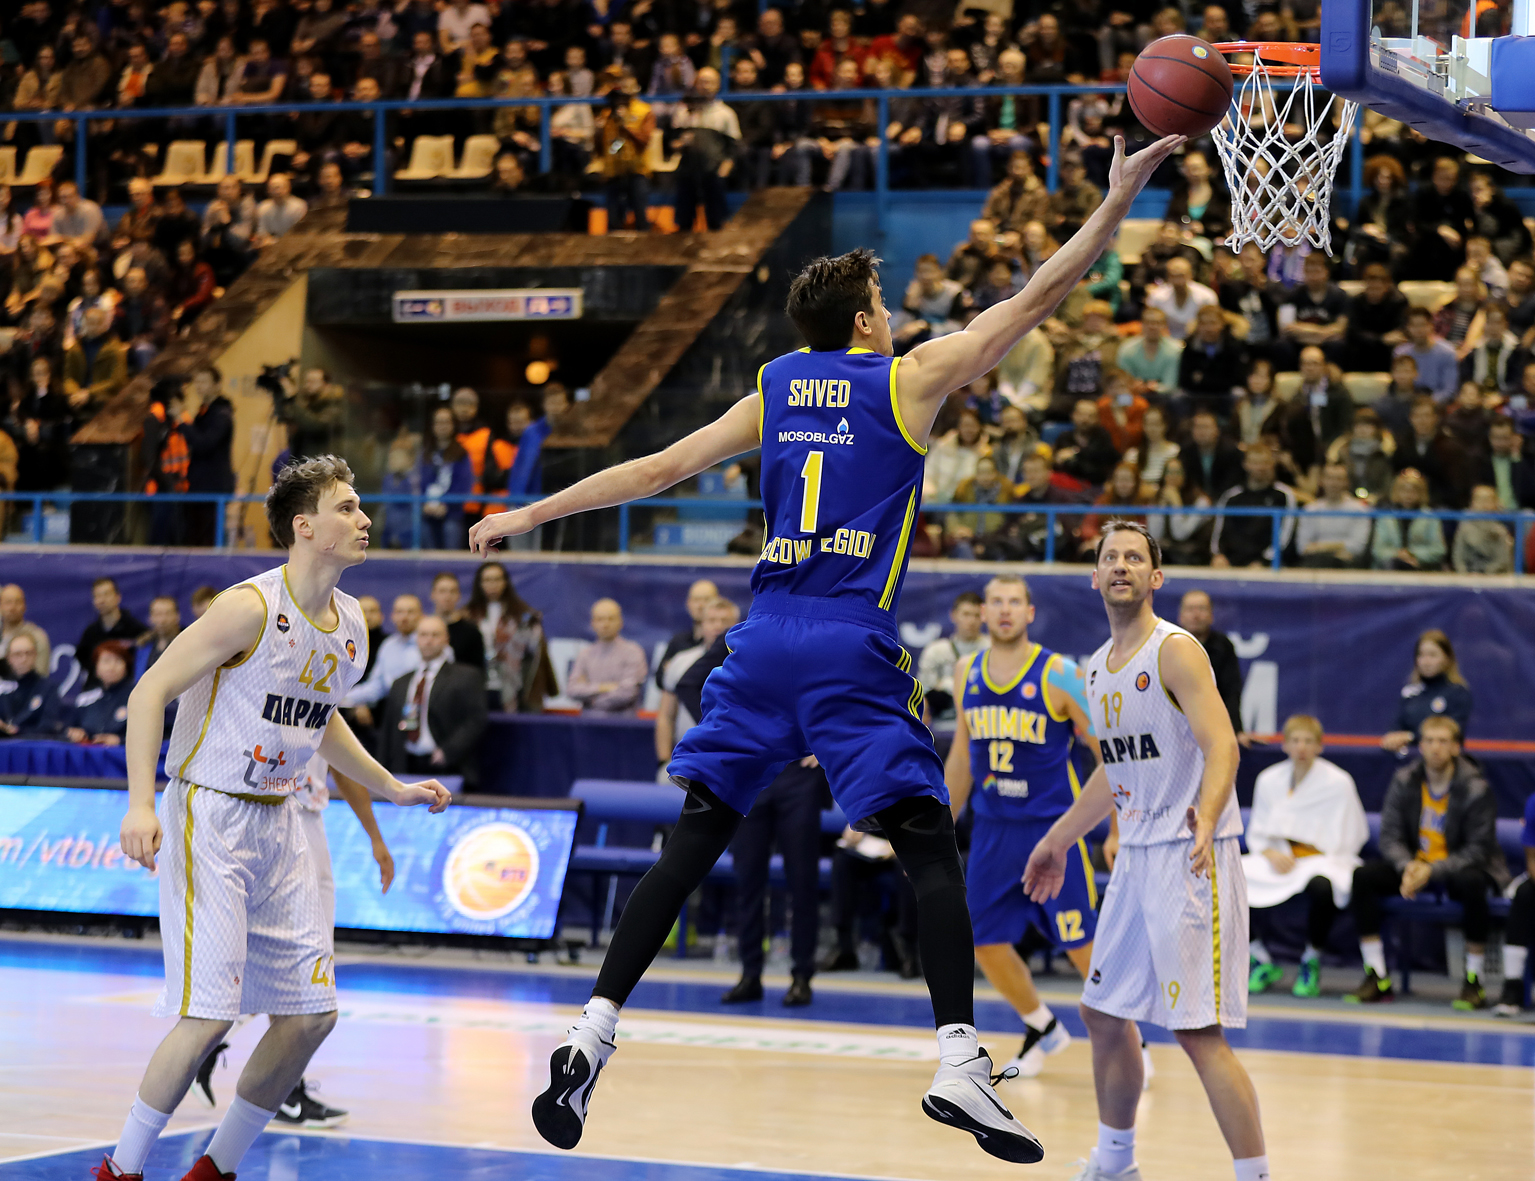 Shved Rescues Khimki In Perm